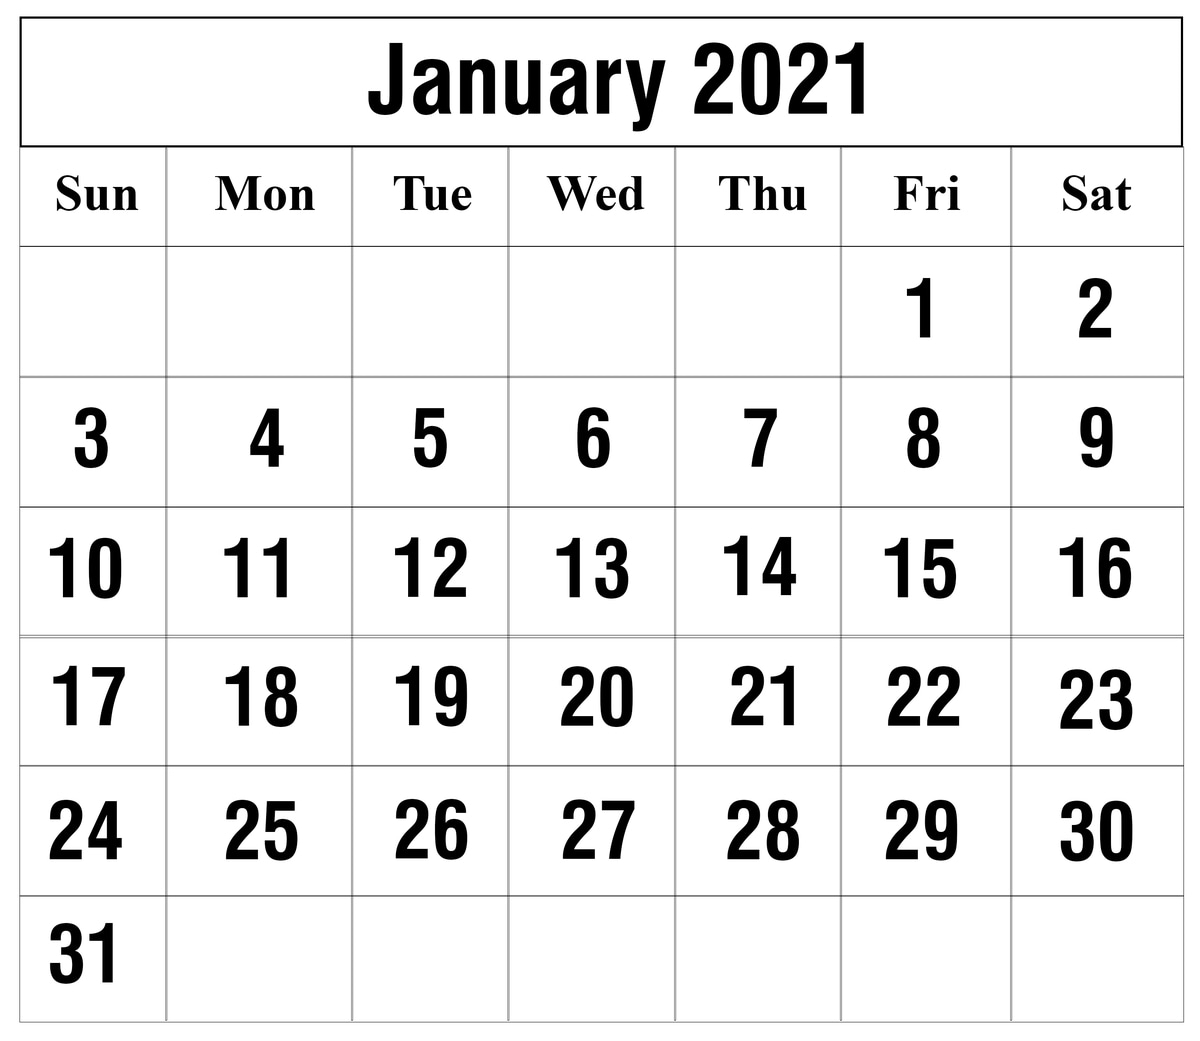 Free January 2021 Printable Calendar Template In Pdf, Excel